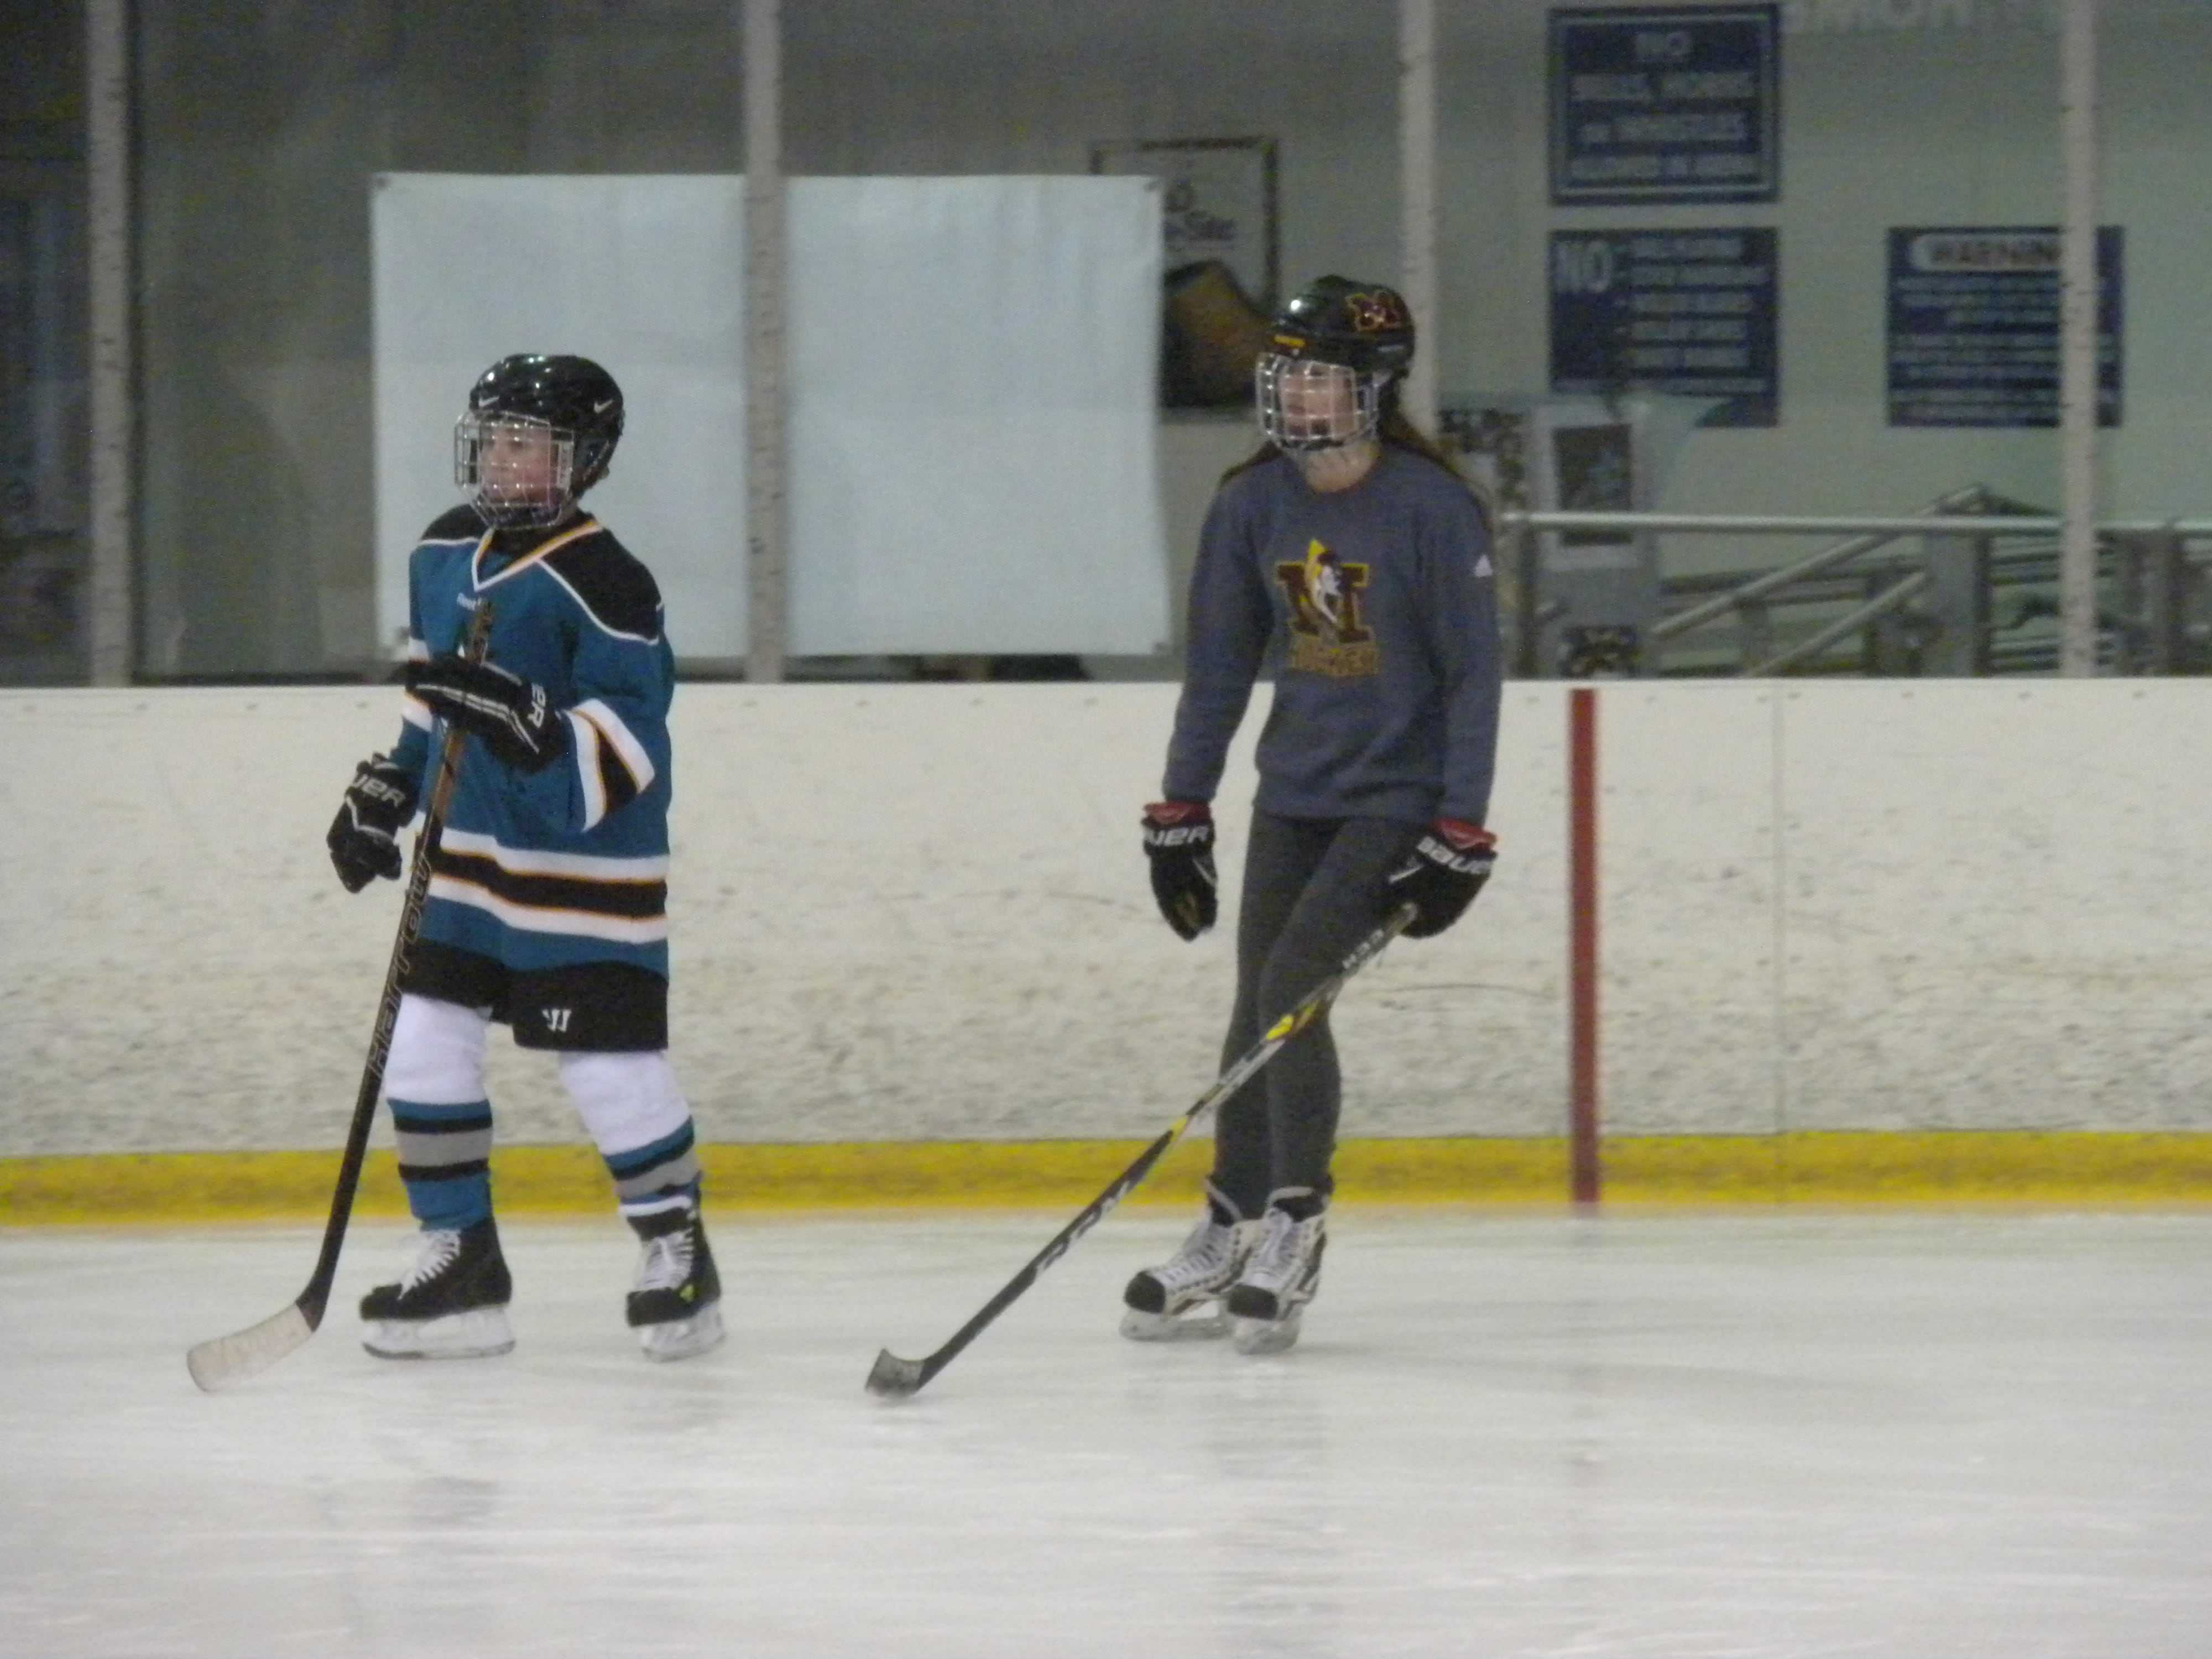 Junior Elena Ervin skates next to a MORC Star player during the learn-to-skate session. (Photo Credit: Shannon Seabolt)